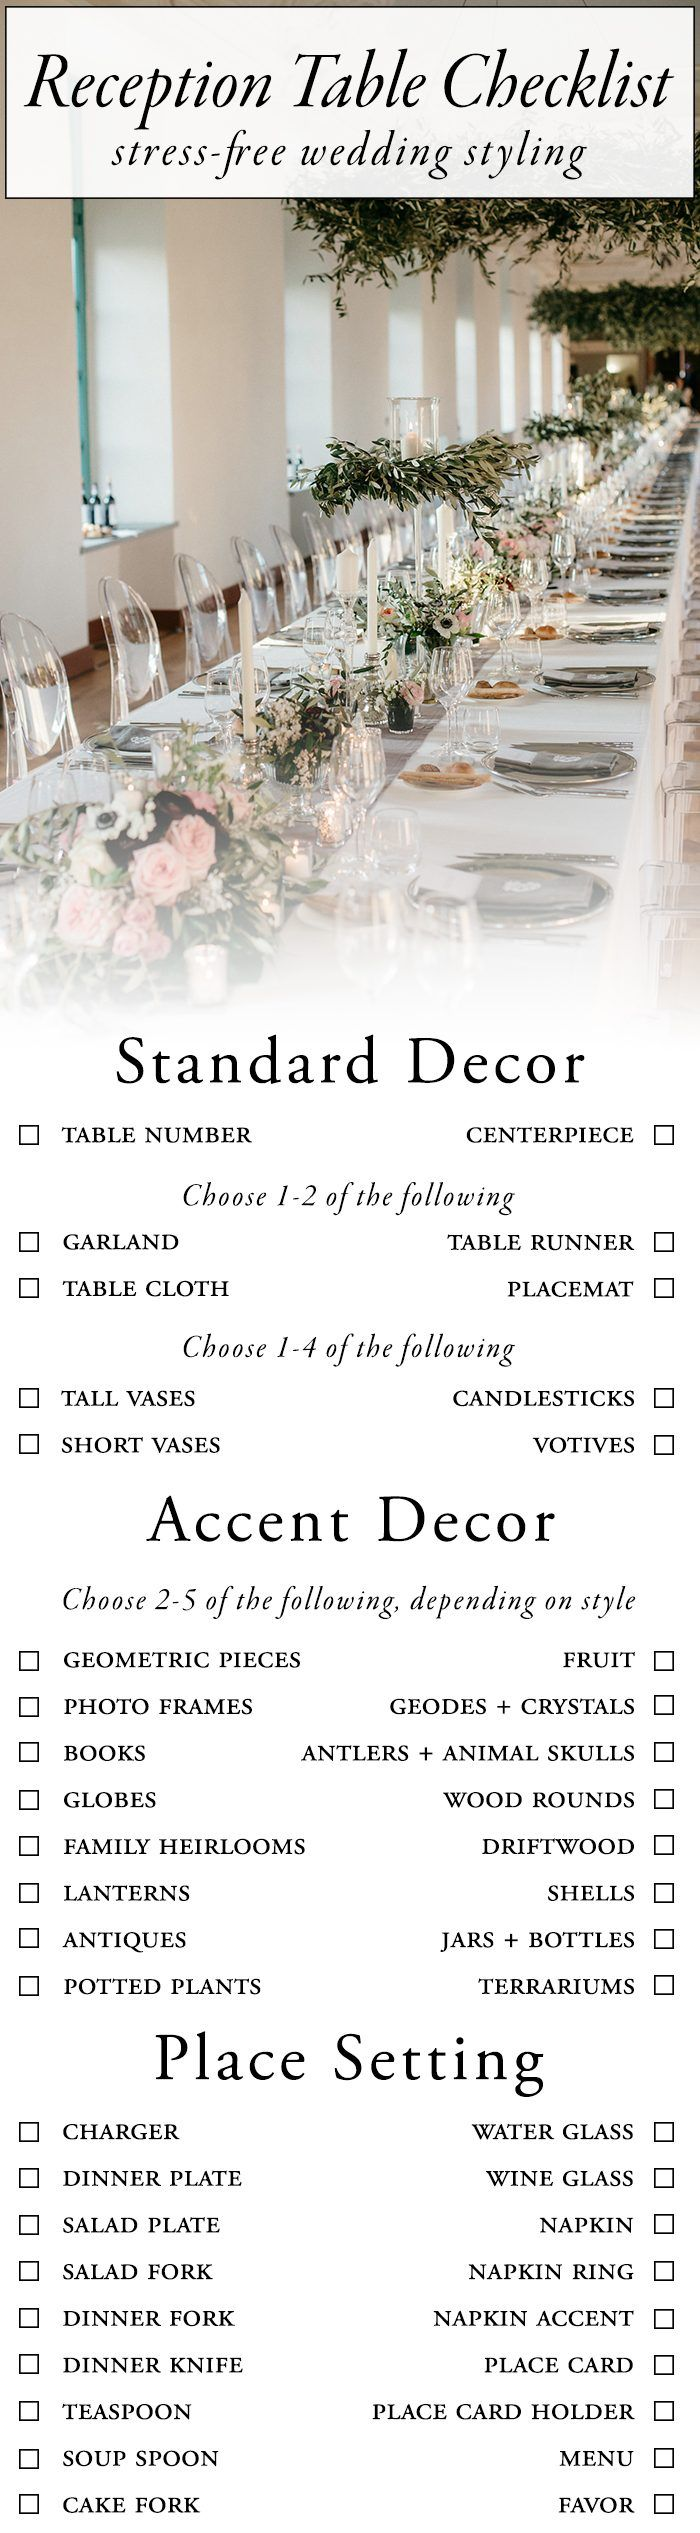 Use This Wedding Reception Table Checklist For Stress Free Styling Junebug Weddings Wedding Reception Checklist Wedding Planning Tools Wedding Reception Tables